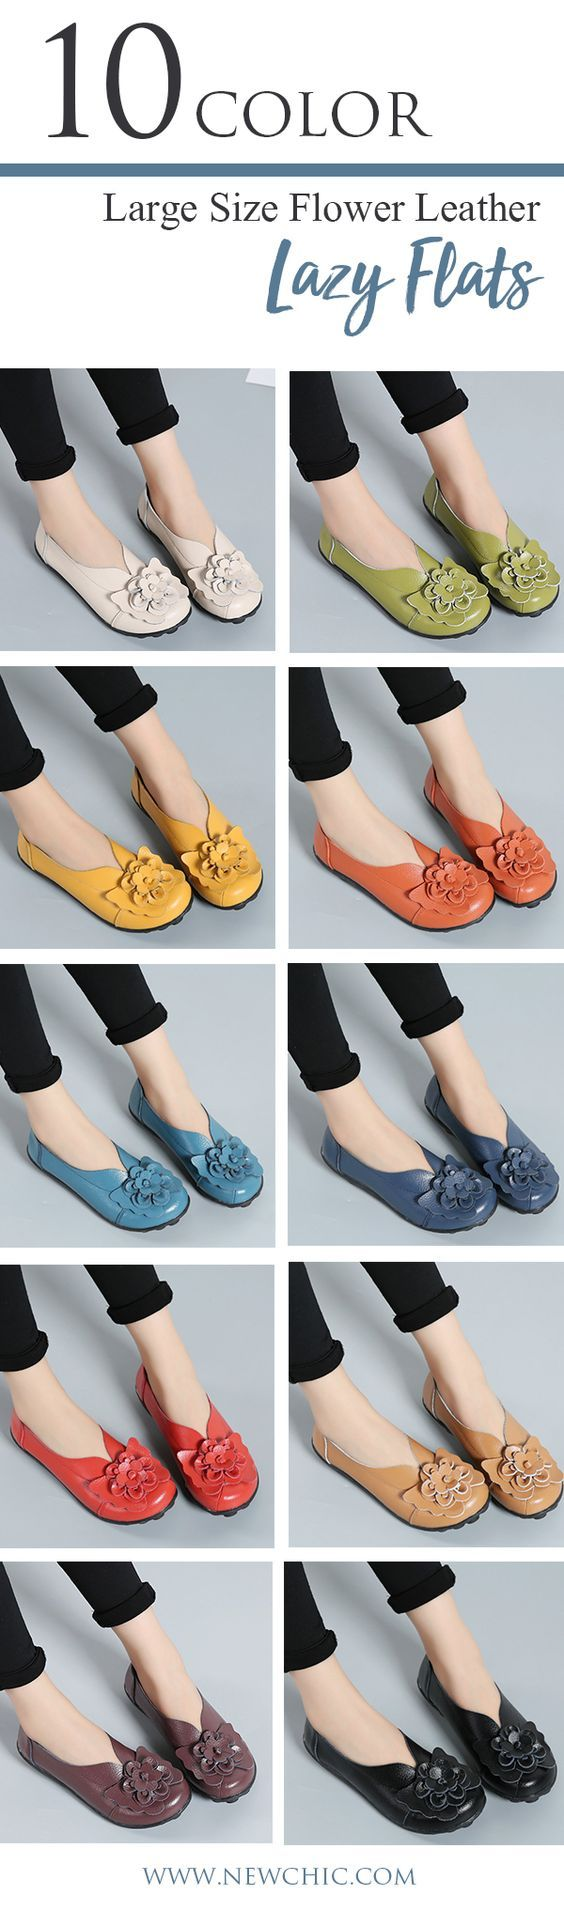 Spring newest style loafers.Large Size Flower Leather Lazy Flats.Make you feet comfortable.Suitable for office and daily walking.